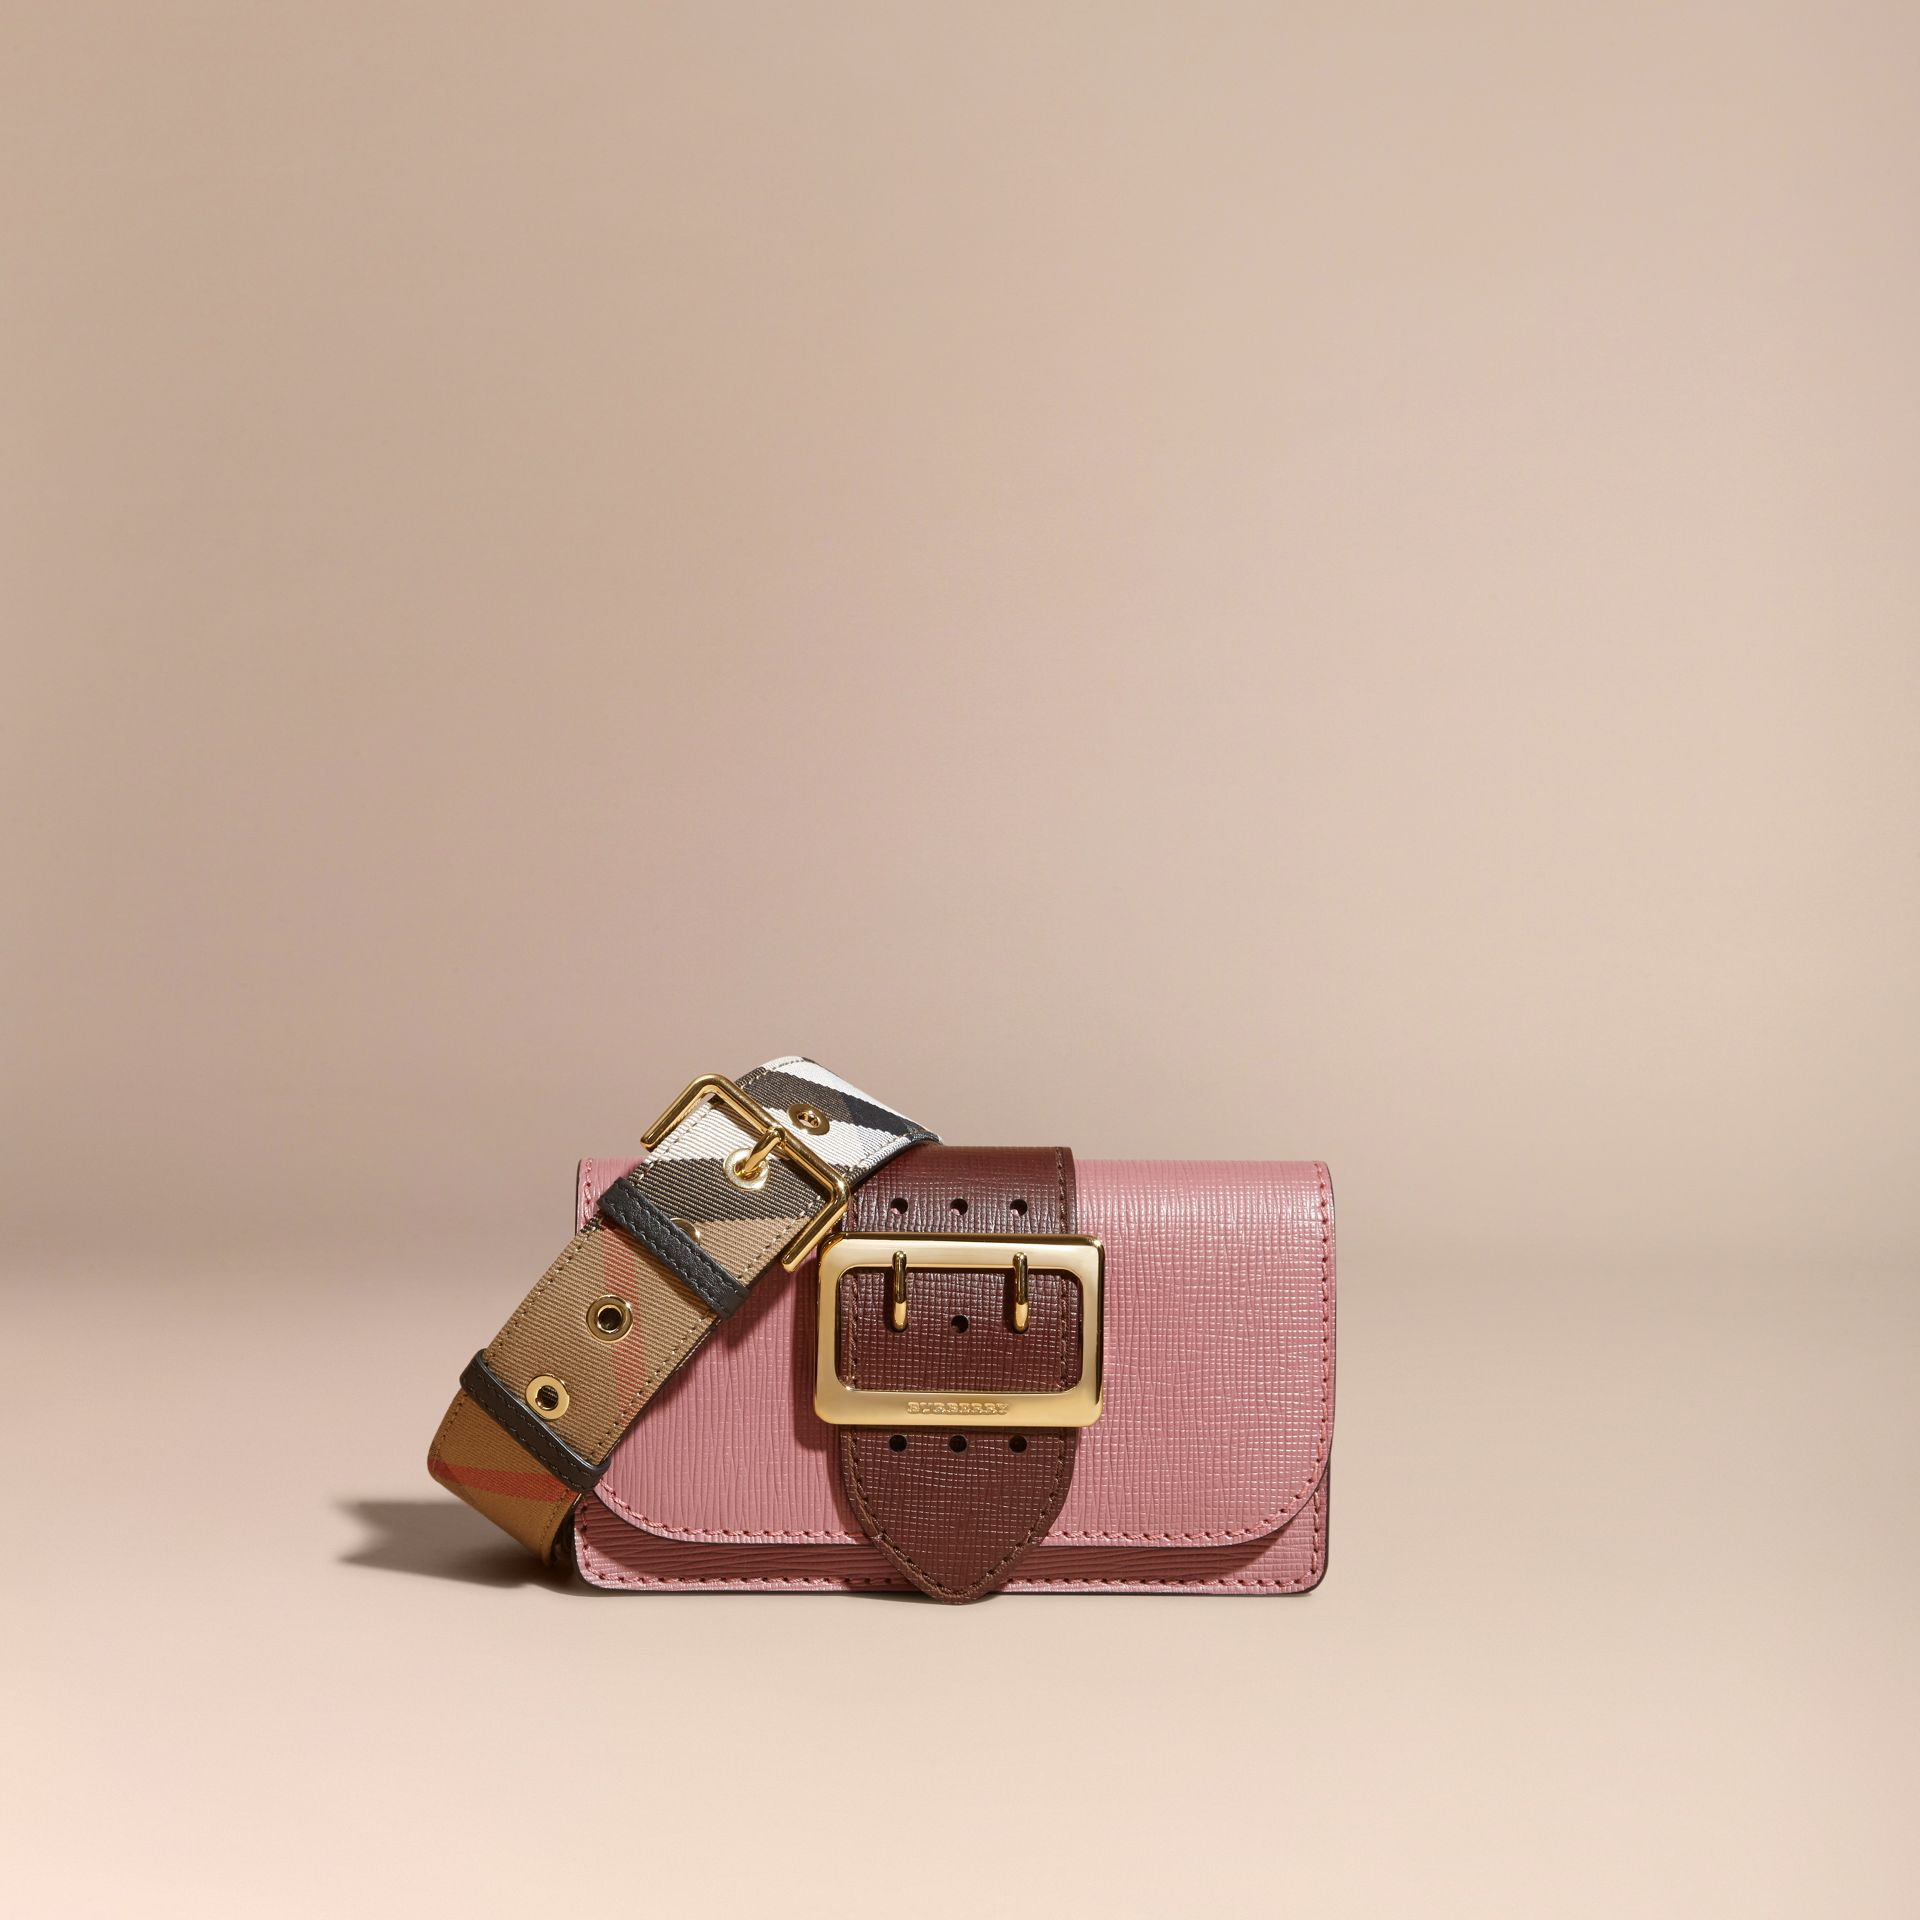 Dusky pink/ burgundy The Small Buckle Bag in Textured Leather Dusky Pink/ Burgundy - gallery image 9